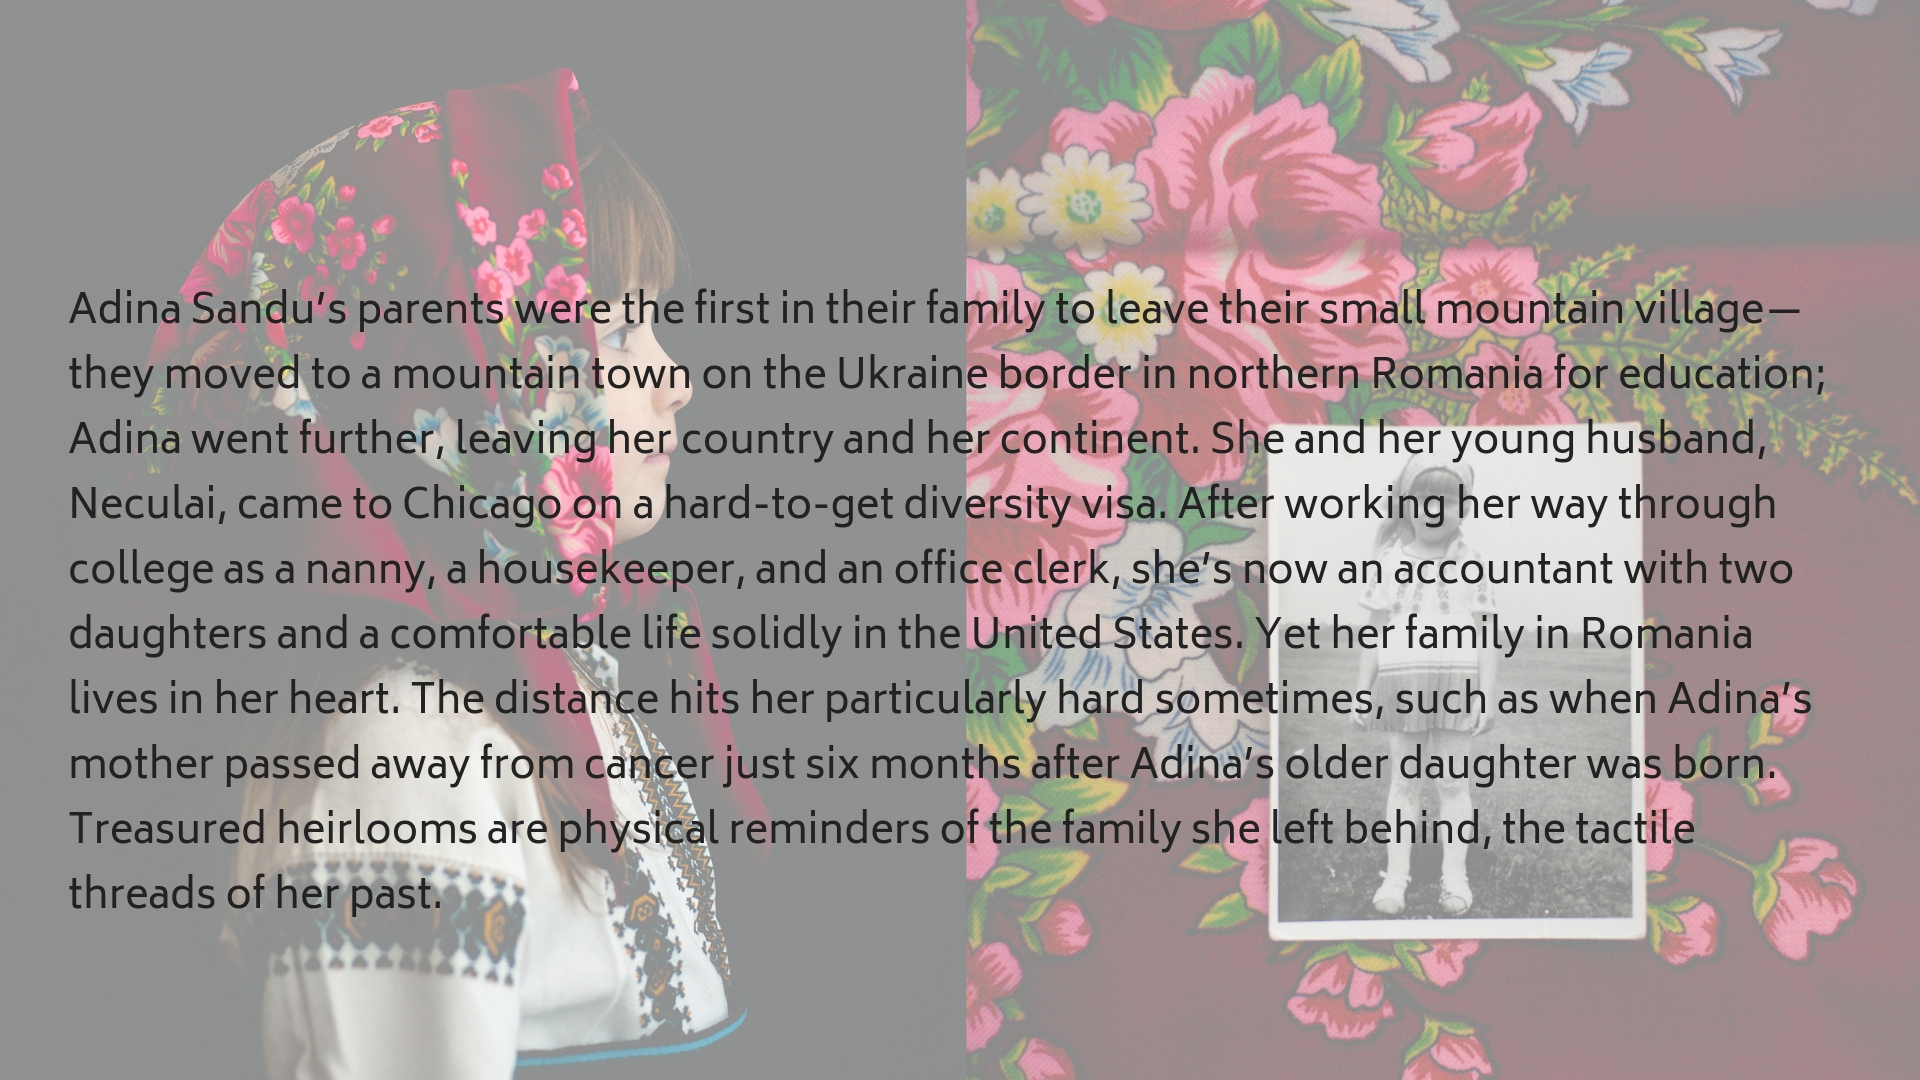 Adina Sandu's parents were the first in their family to leave their small mountain village—they moved to a mountain town on the Ukraine border in northern Romania for education; Adina went further, leaving her countr-2.jpg